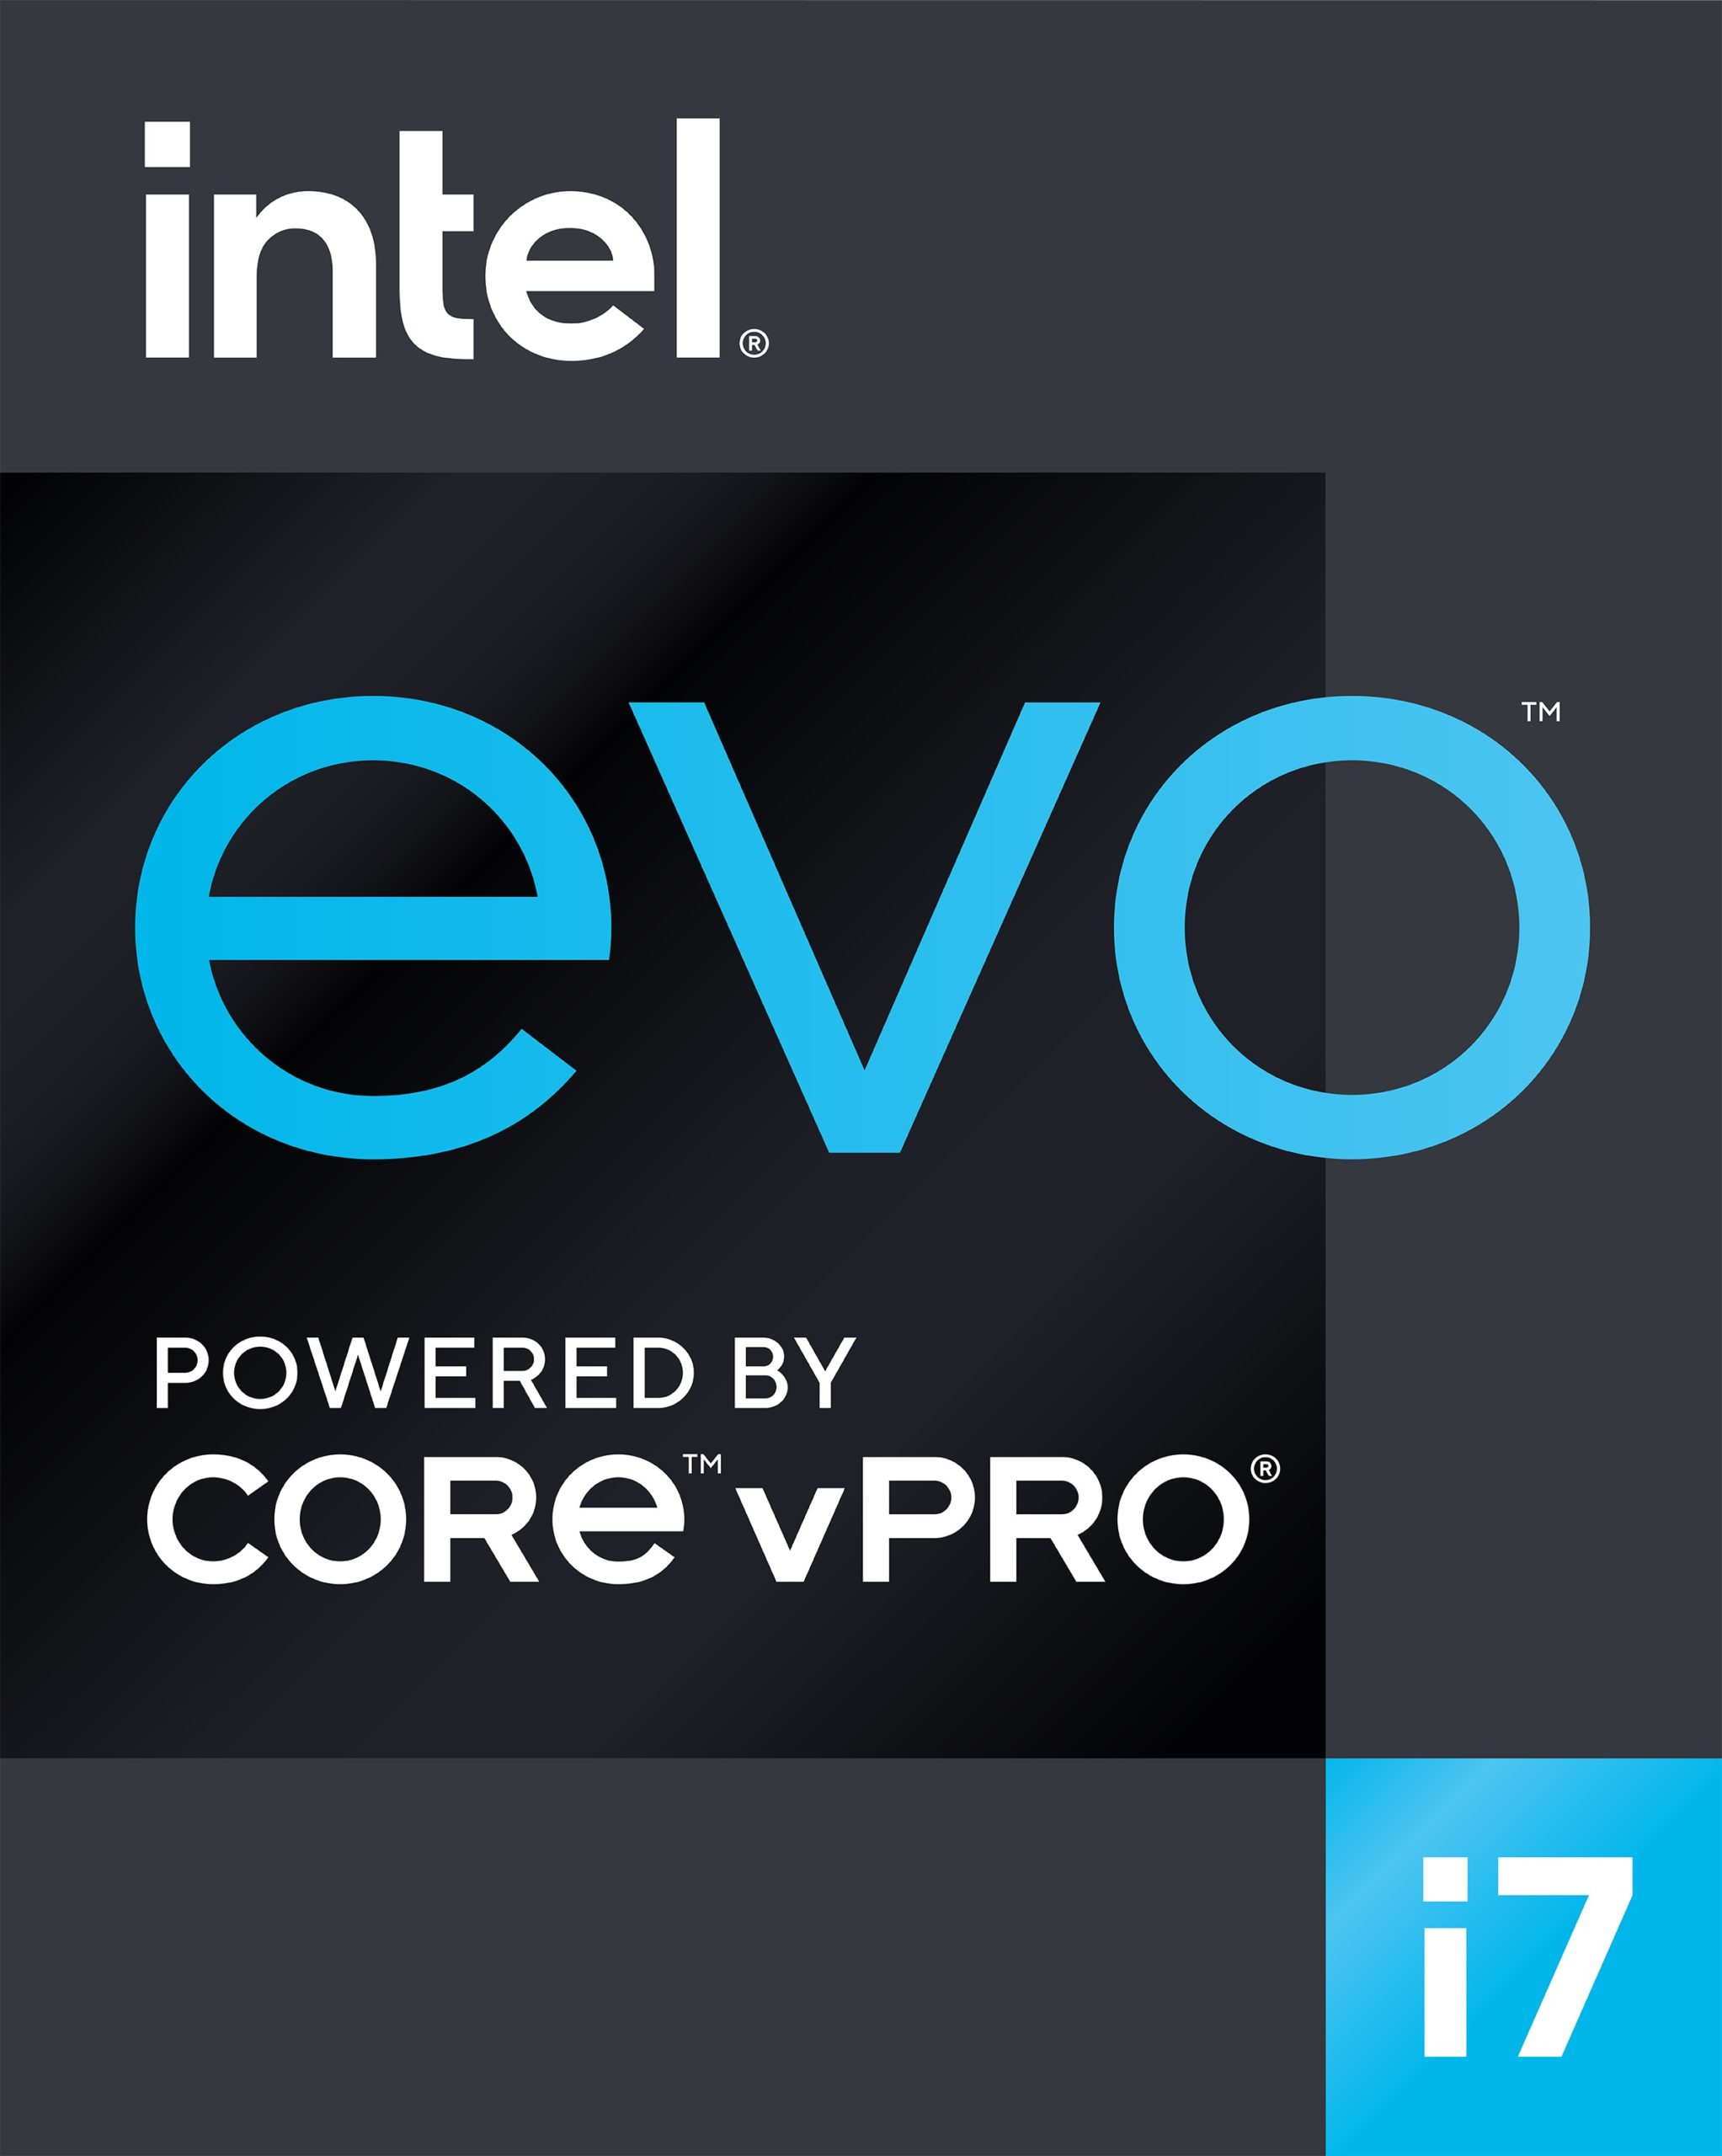 Intel-Evo-vPro-badge